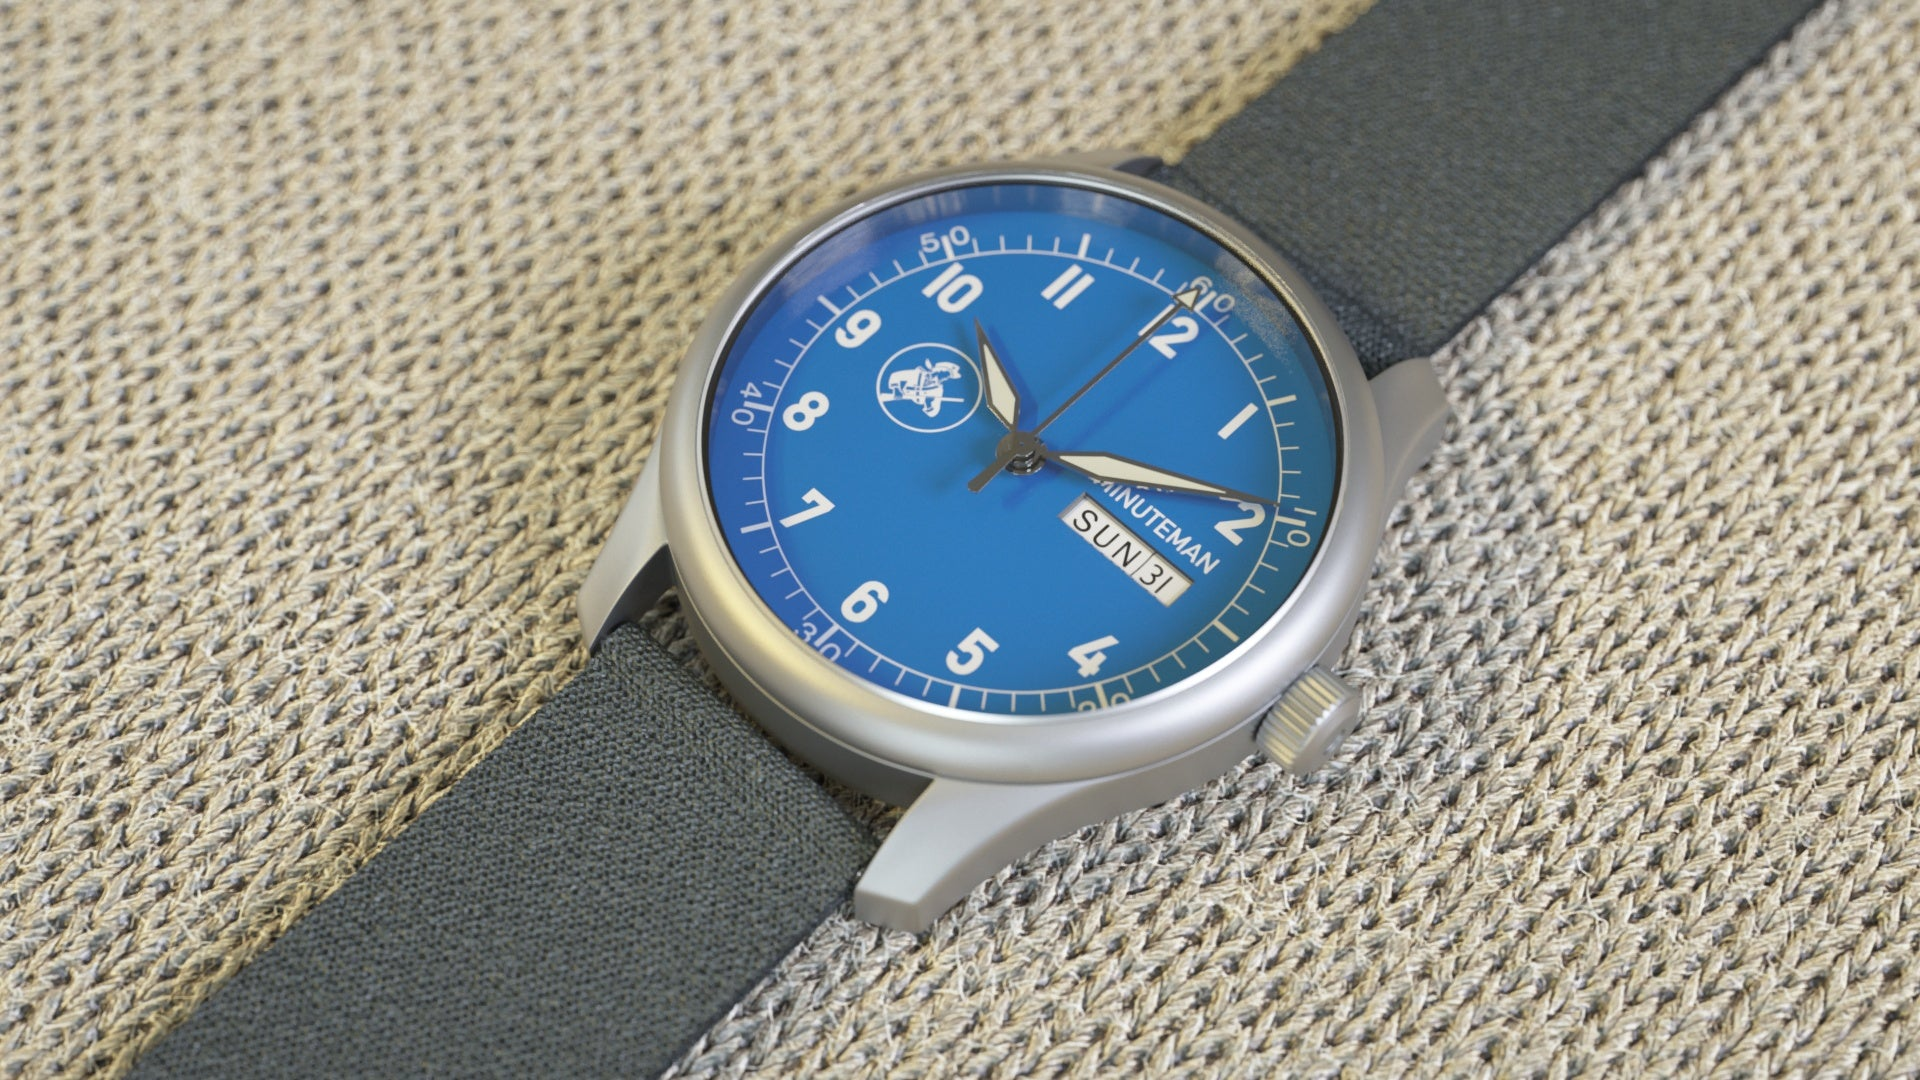 Lower priced Minuteman watches project for 2019